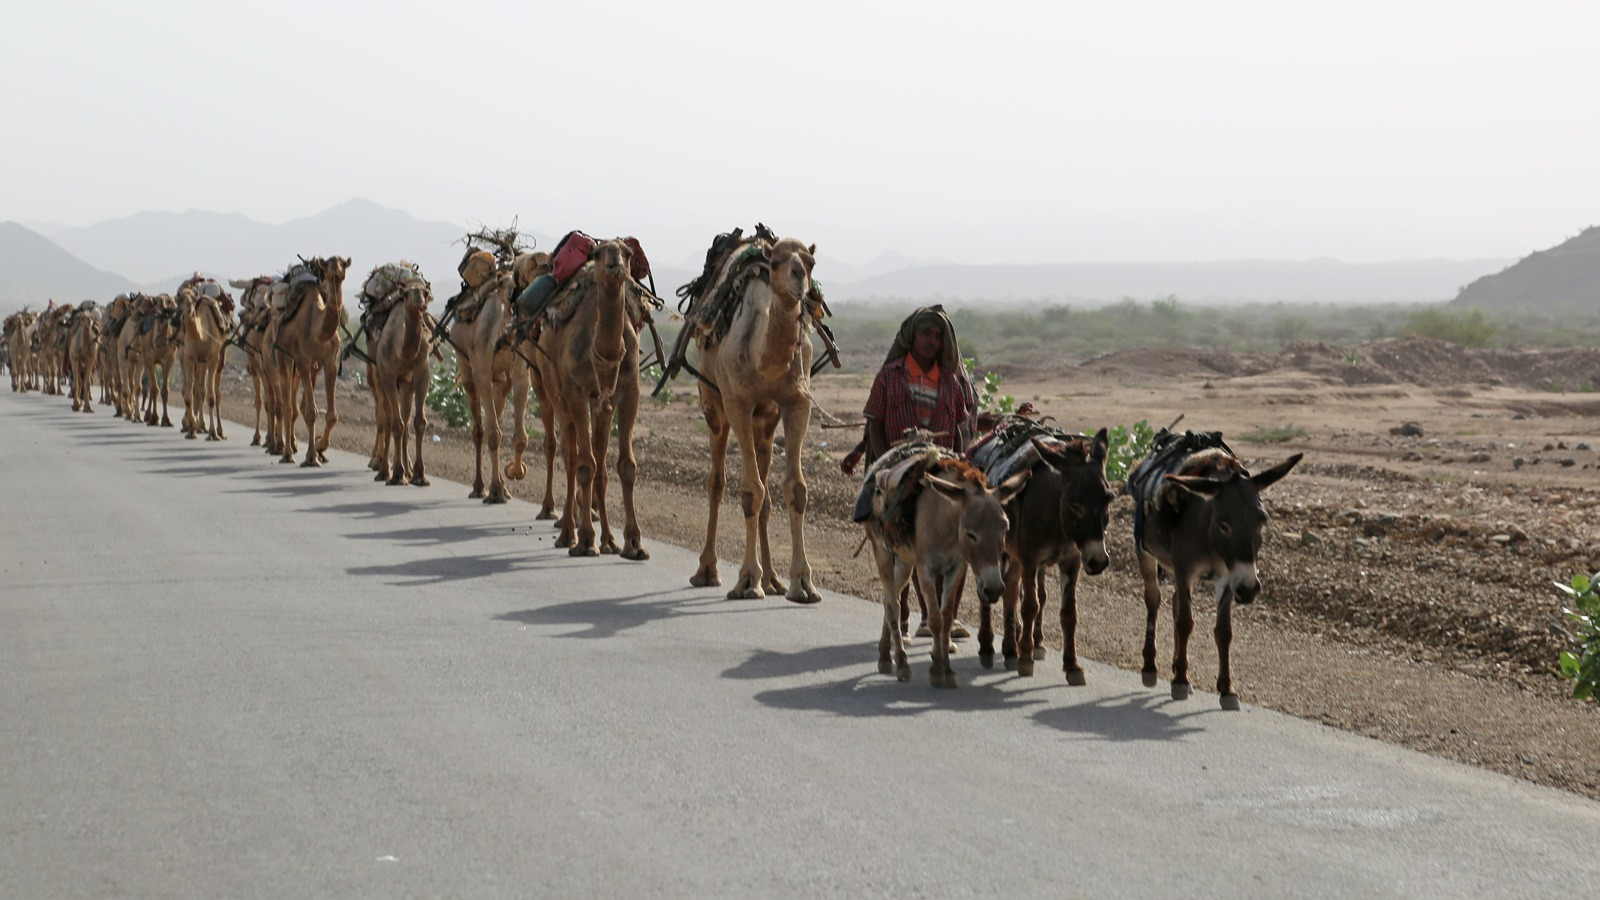 A caravan of camels in Afar carrying blocks of salt cut from the Danakil Depression area